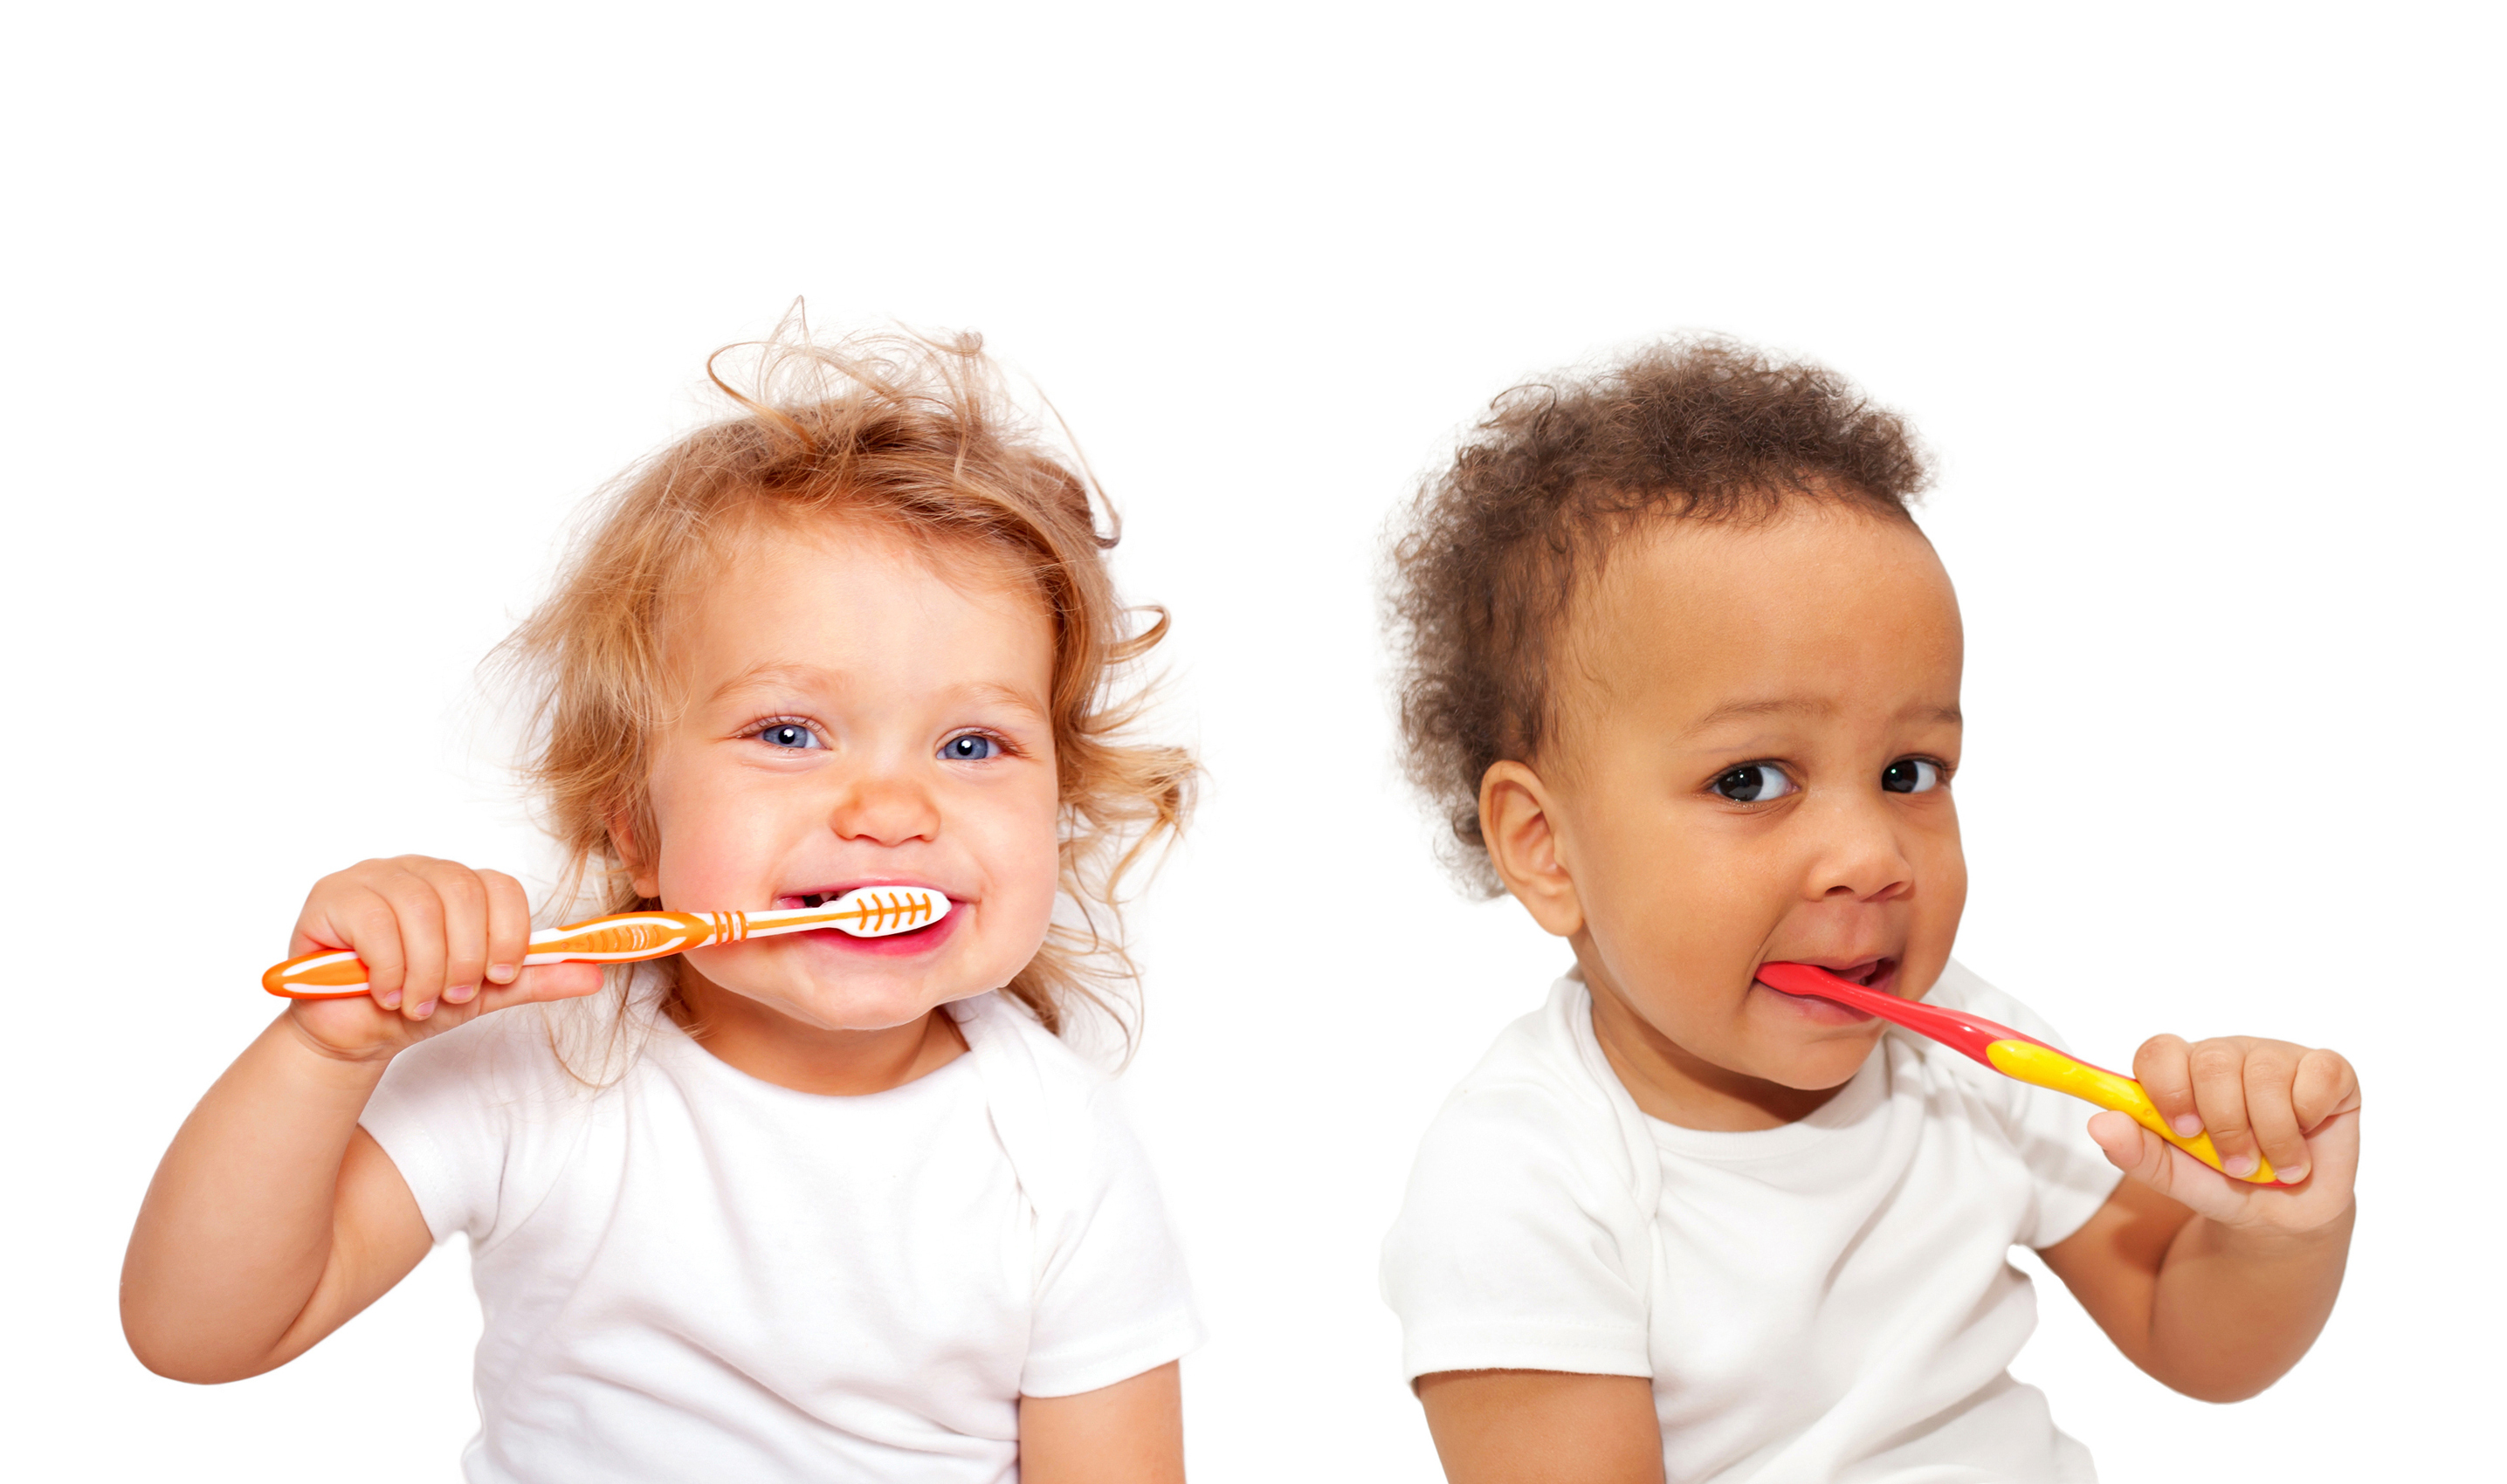 Black and white baby toddlers brushing teeth.jpg Isolated on white background